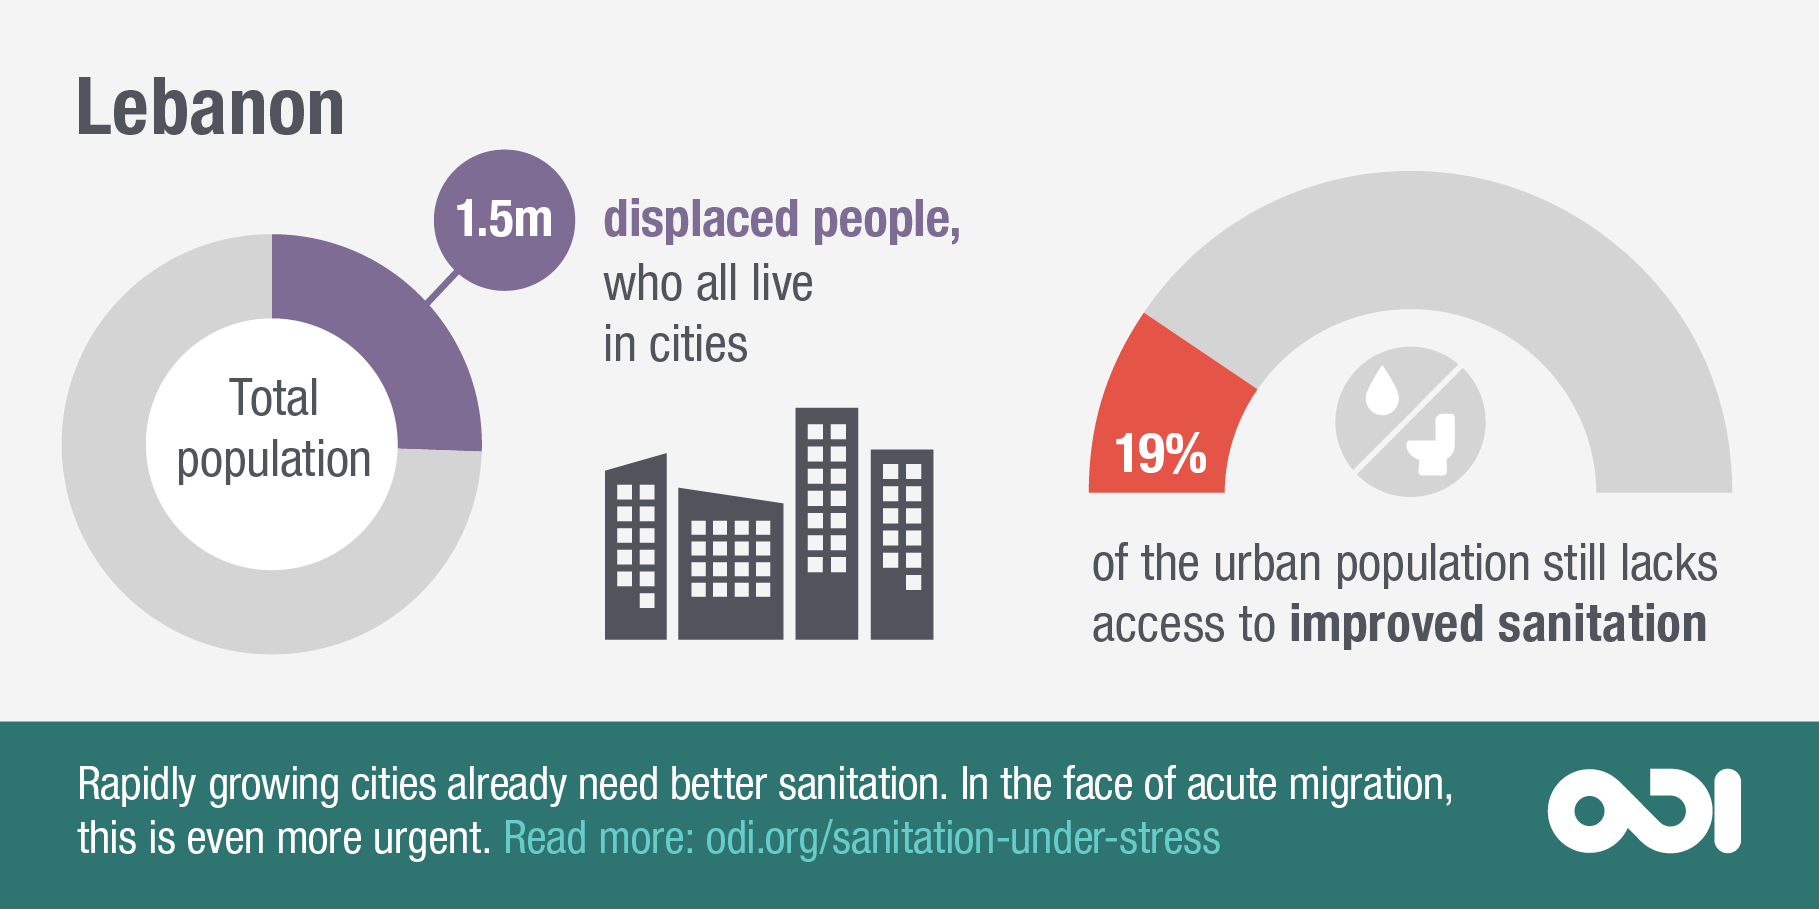 Infographic: rapidly growing cities need better sanitation (Lebanon)